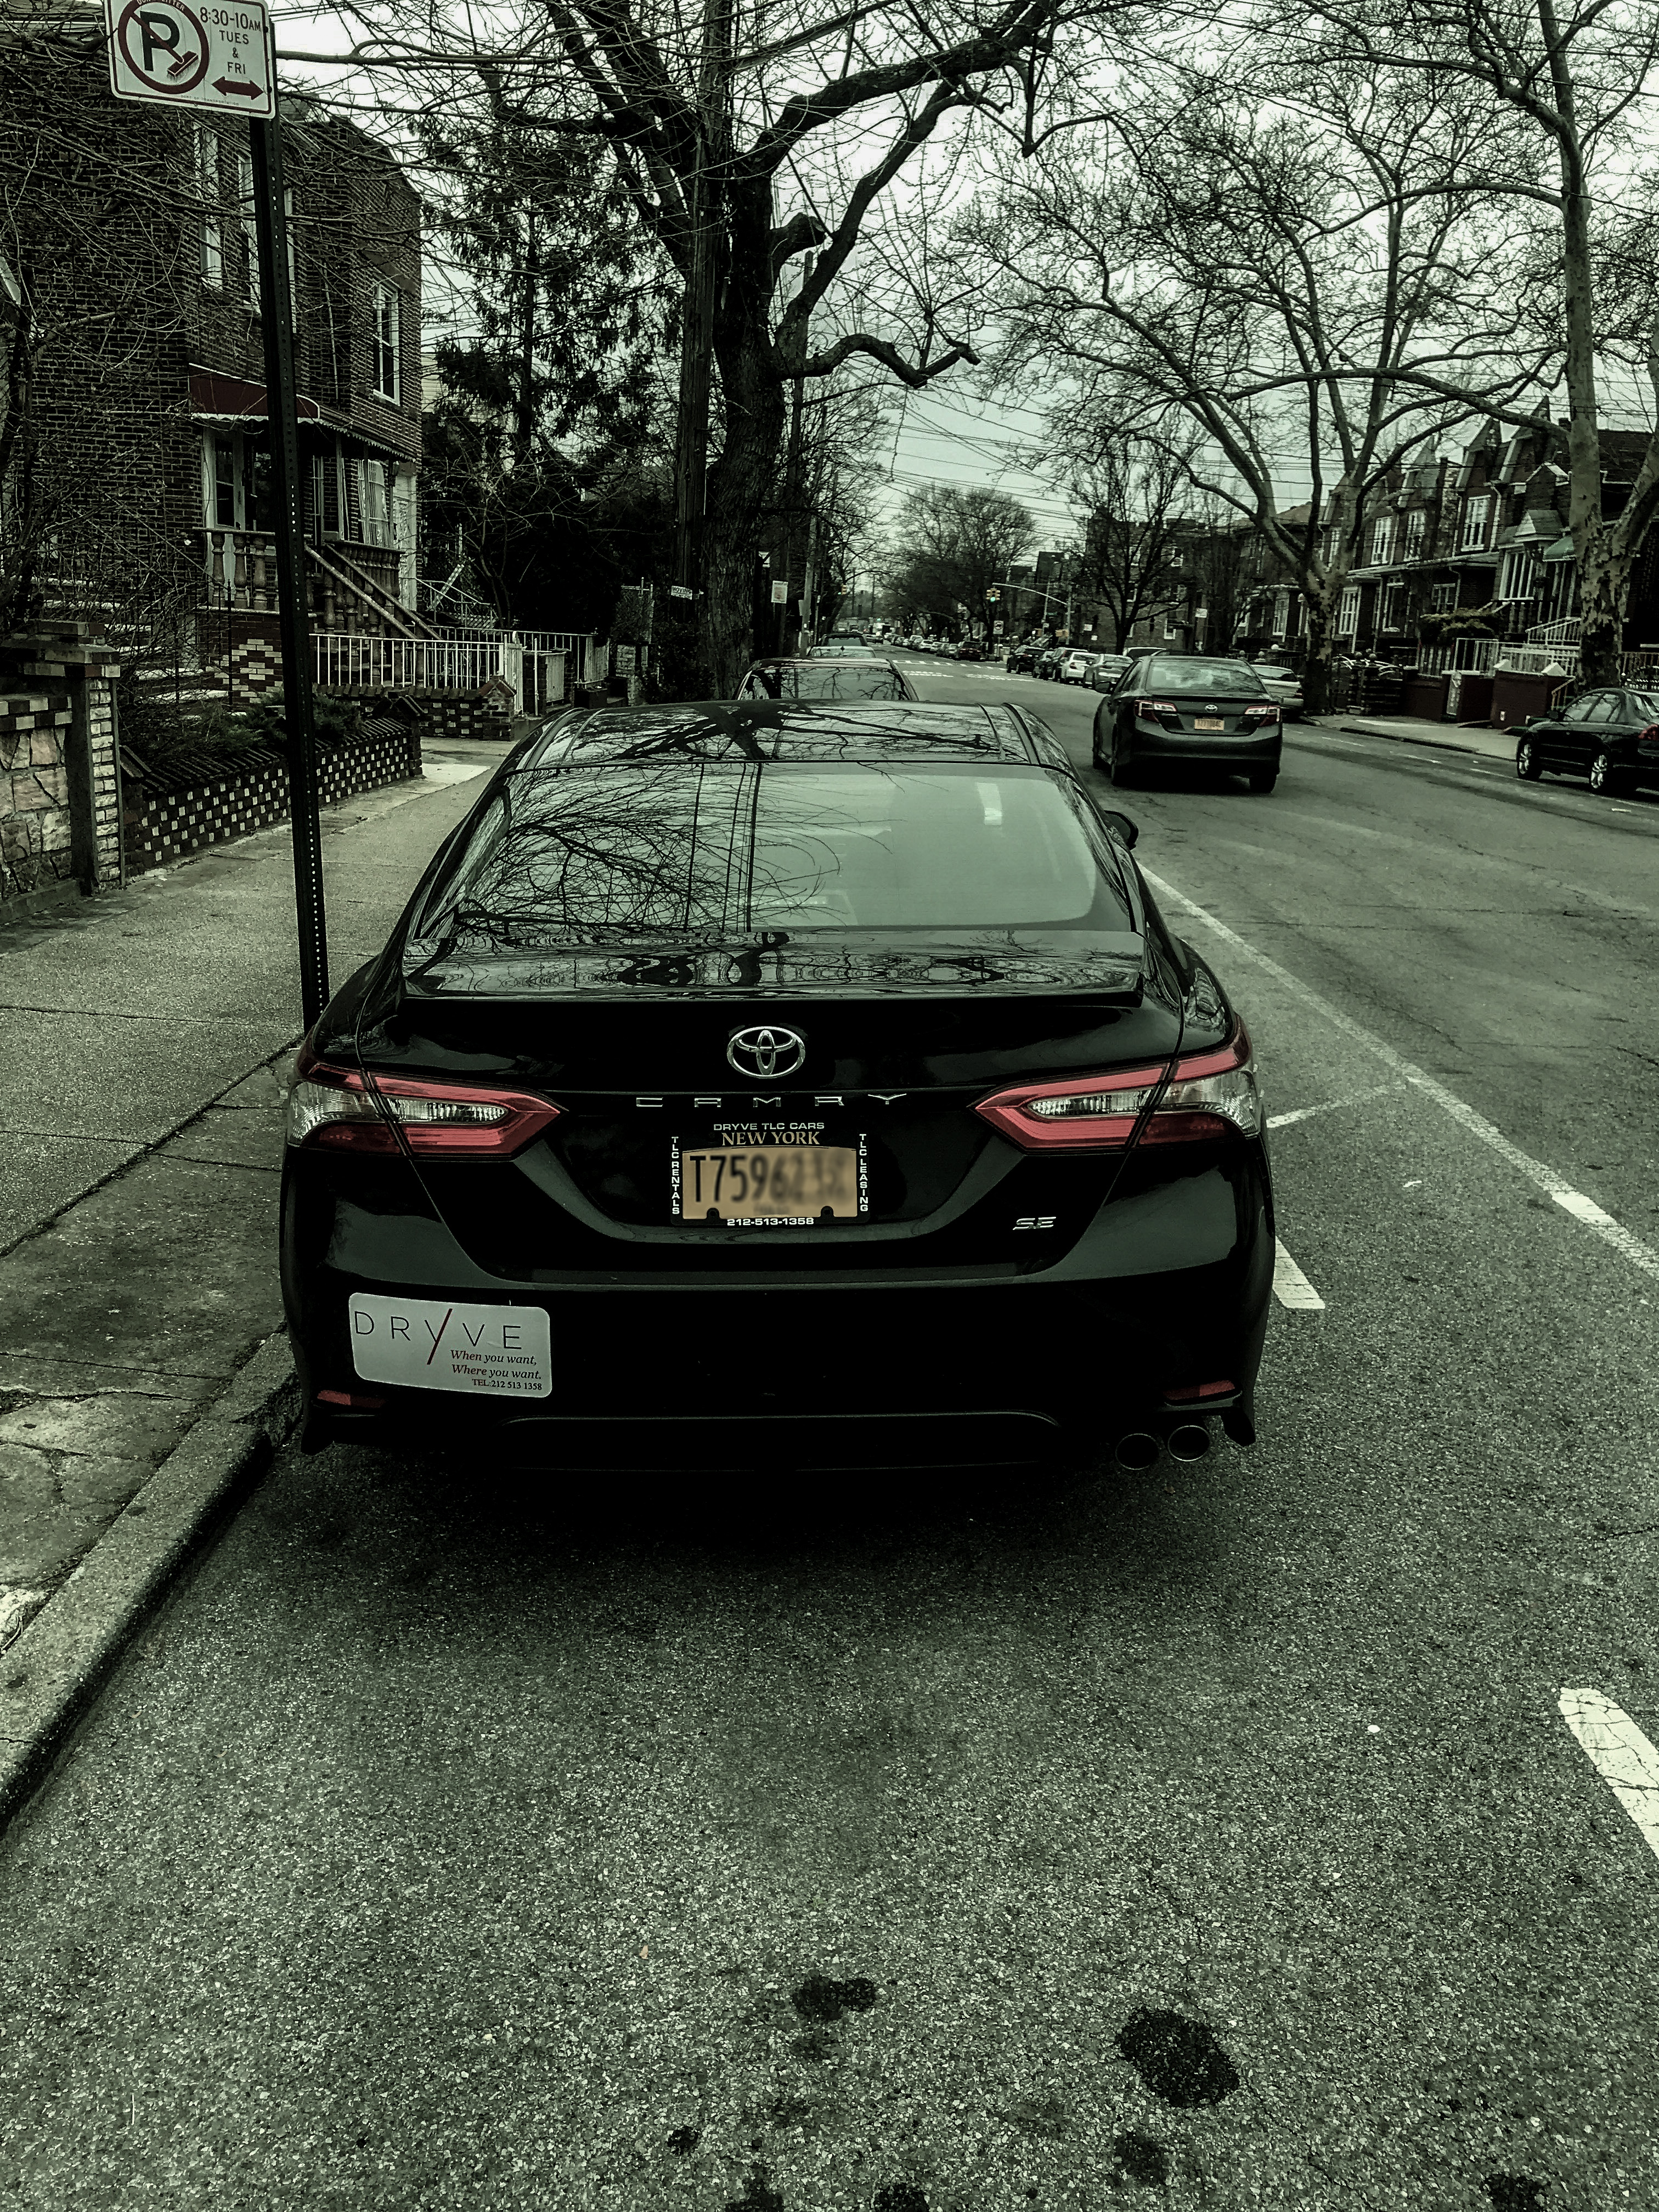 Rental a TLC Vehicle, Rent a rid-share car by the hour Long Island City  With Uber/Lyft/Via